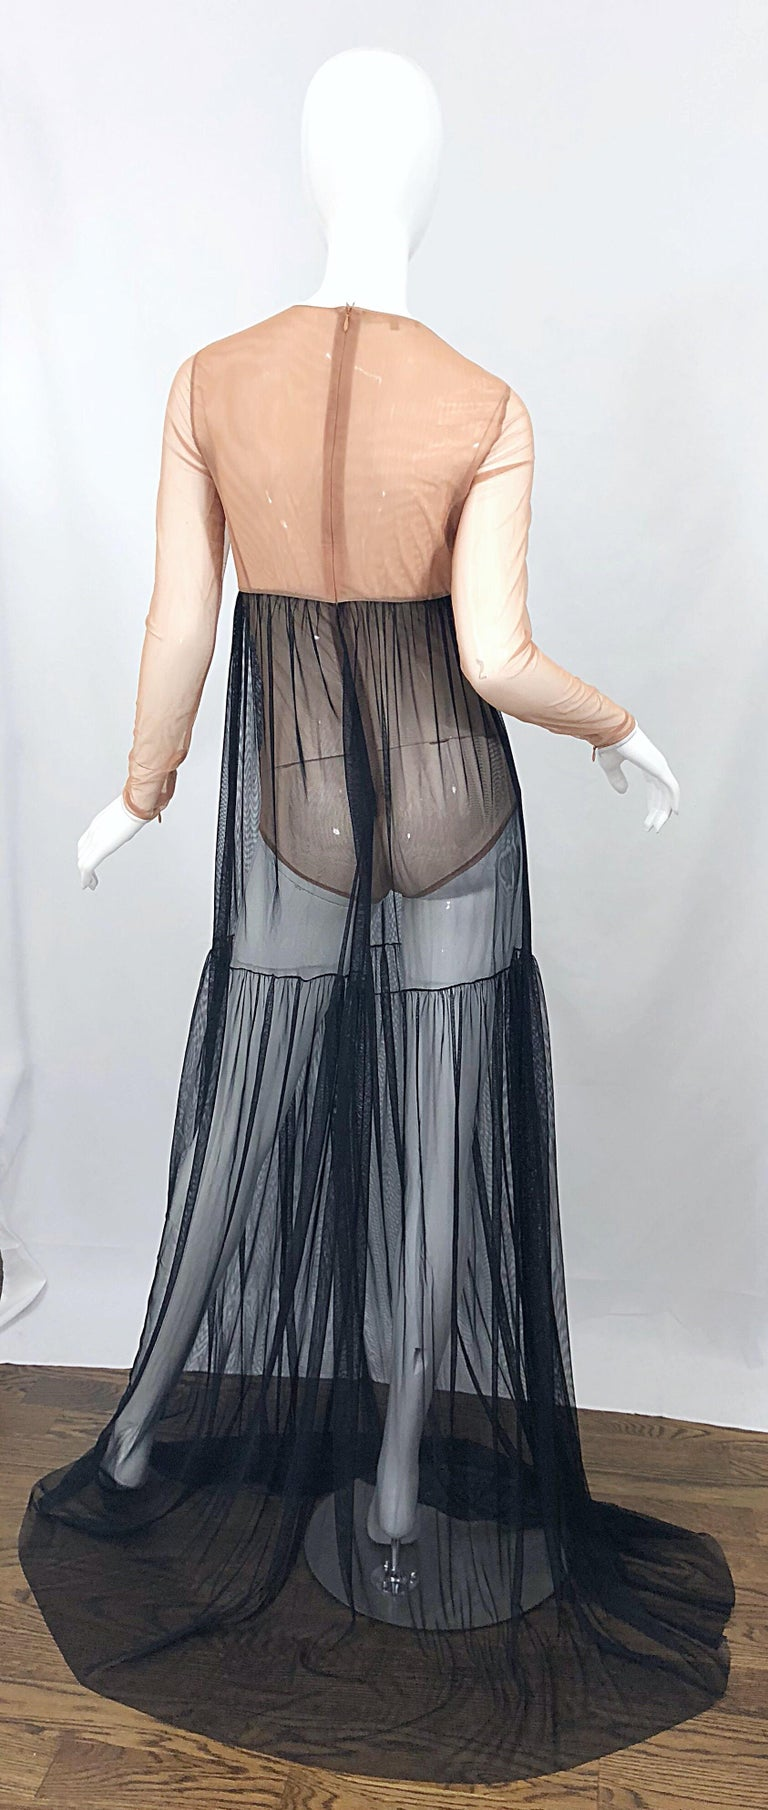 Michael Kors Collection Sz 4 Nude + Black Sheer Runway Mesh Bodysuit Gown Dress In Excellent Condition For Sale In Chicago, IL